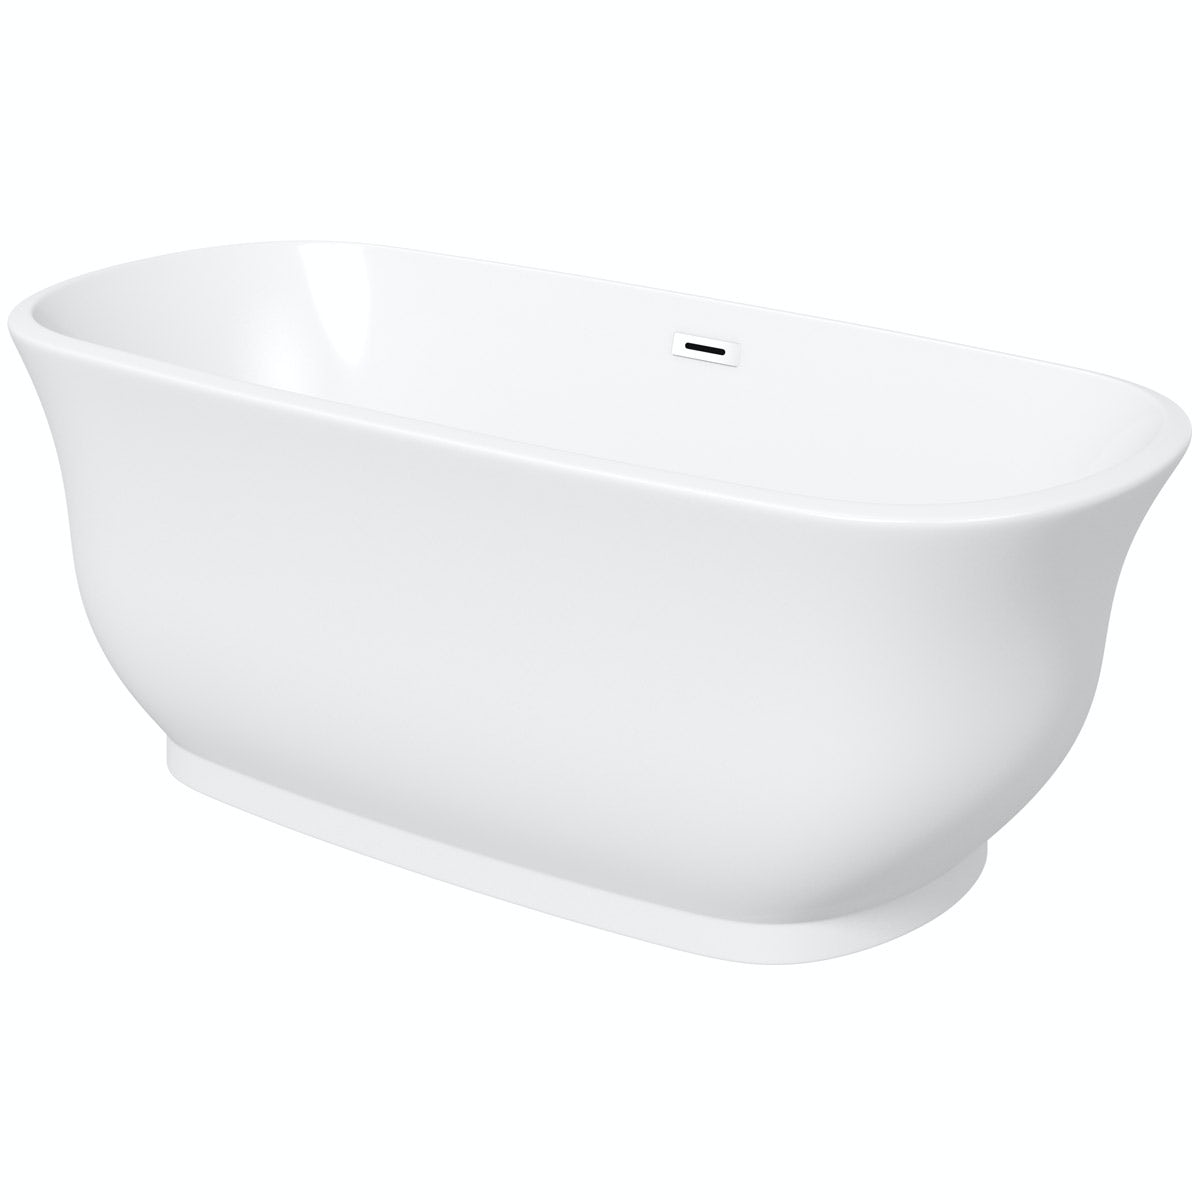 The Bath Co. Camberley traditional freestanding bath